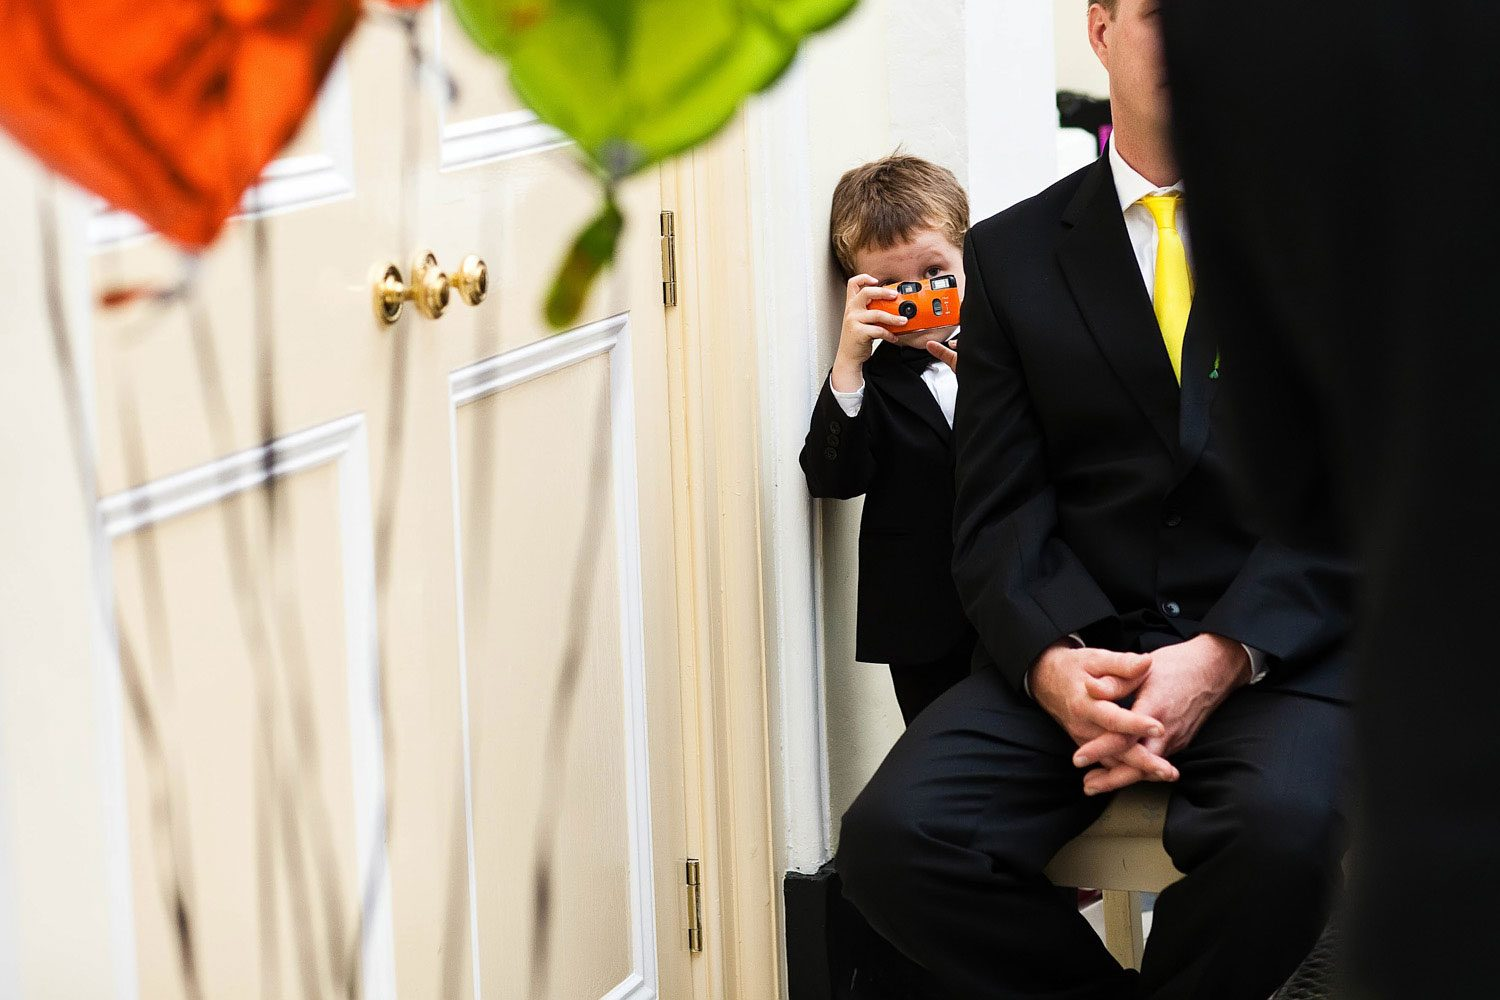 little boys takes picture at wedding